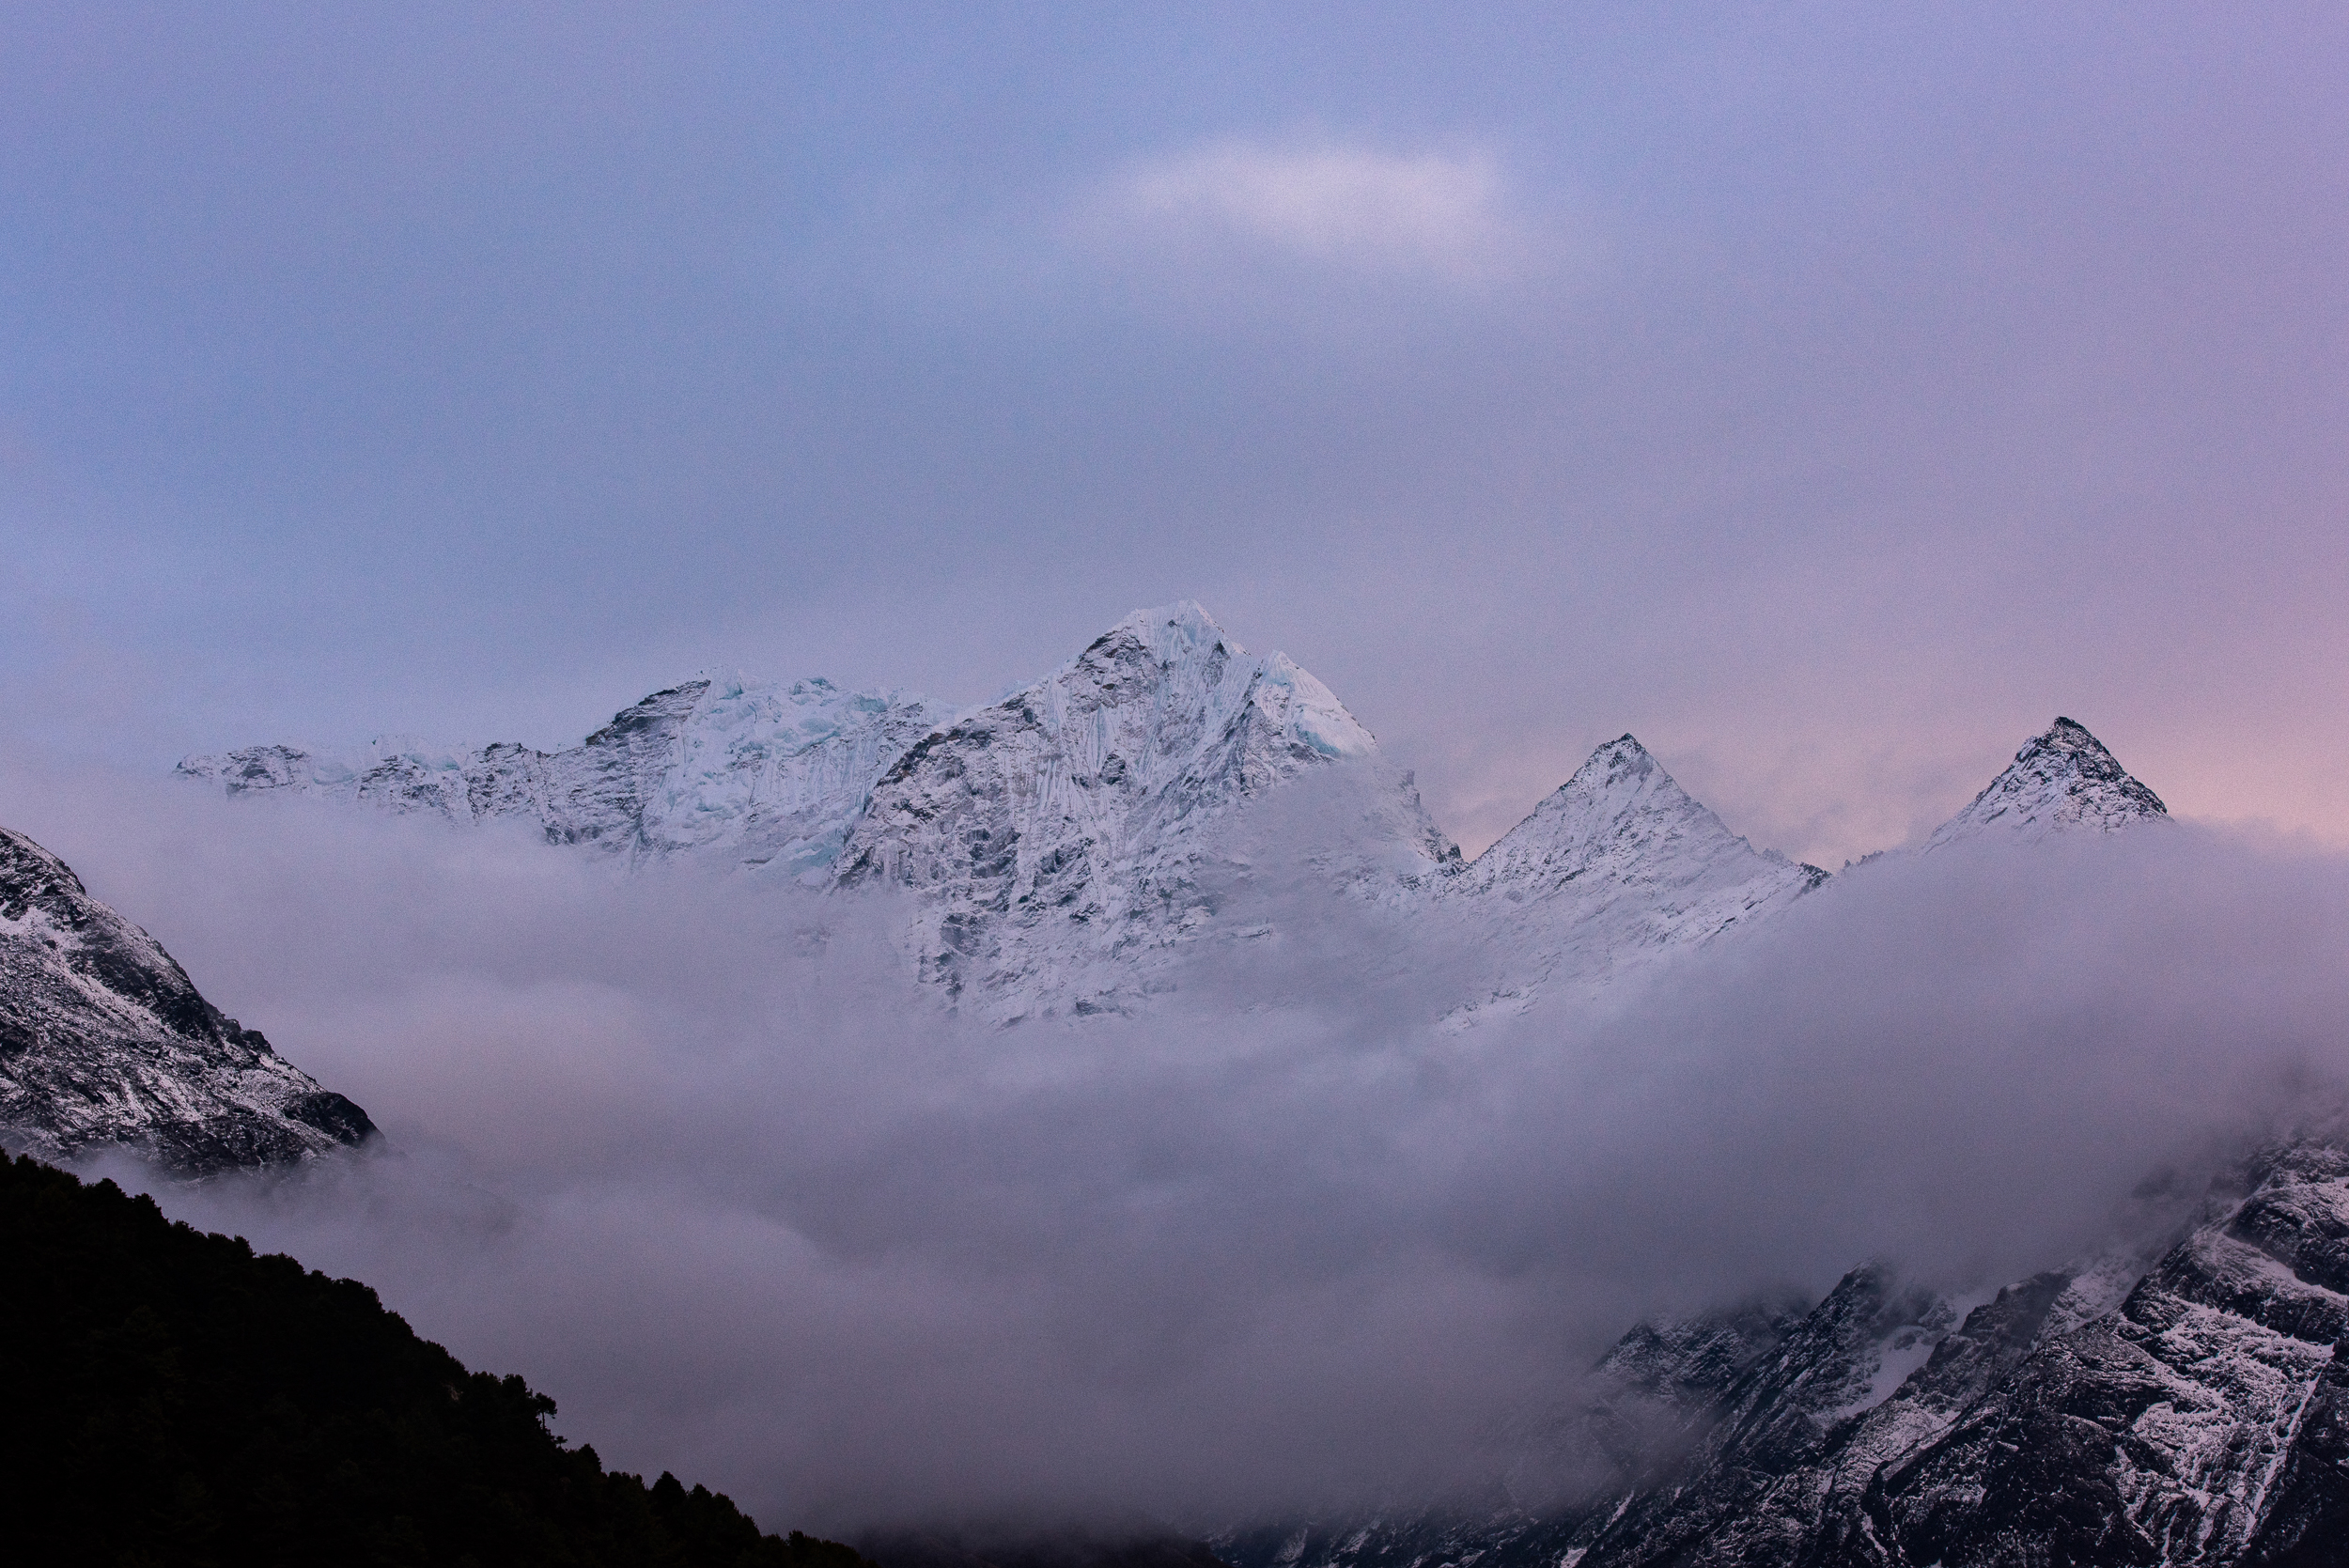 Nepal_EverestBaseCamp_2019_TaraShupe_Photography_DSC_3739.jpg